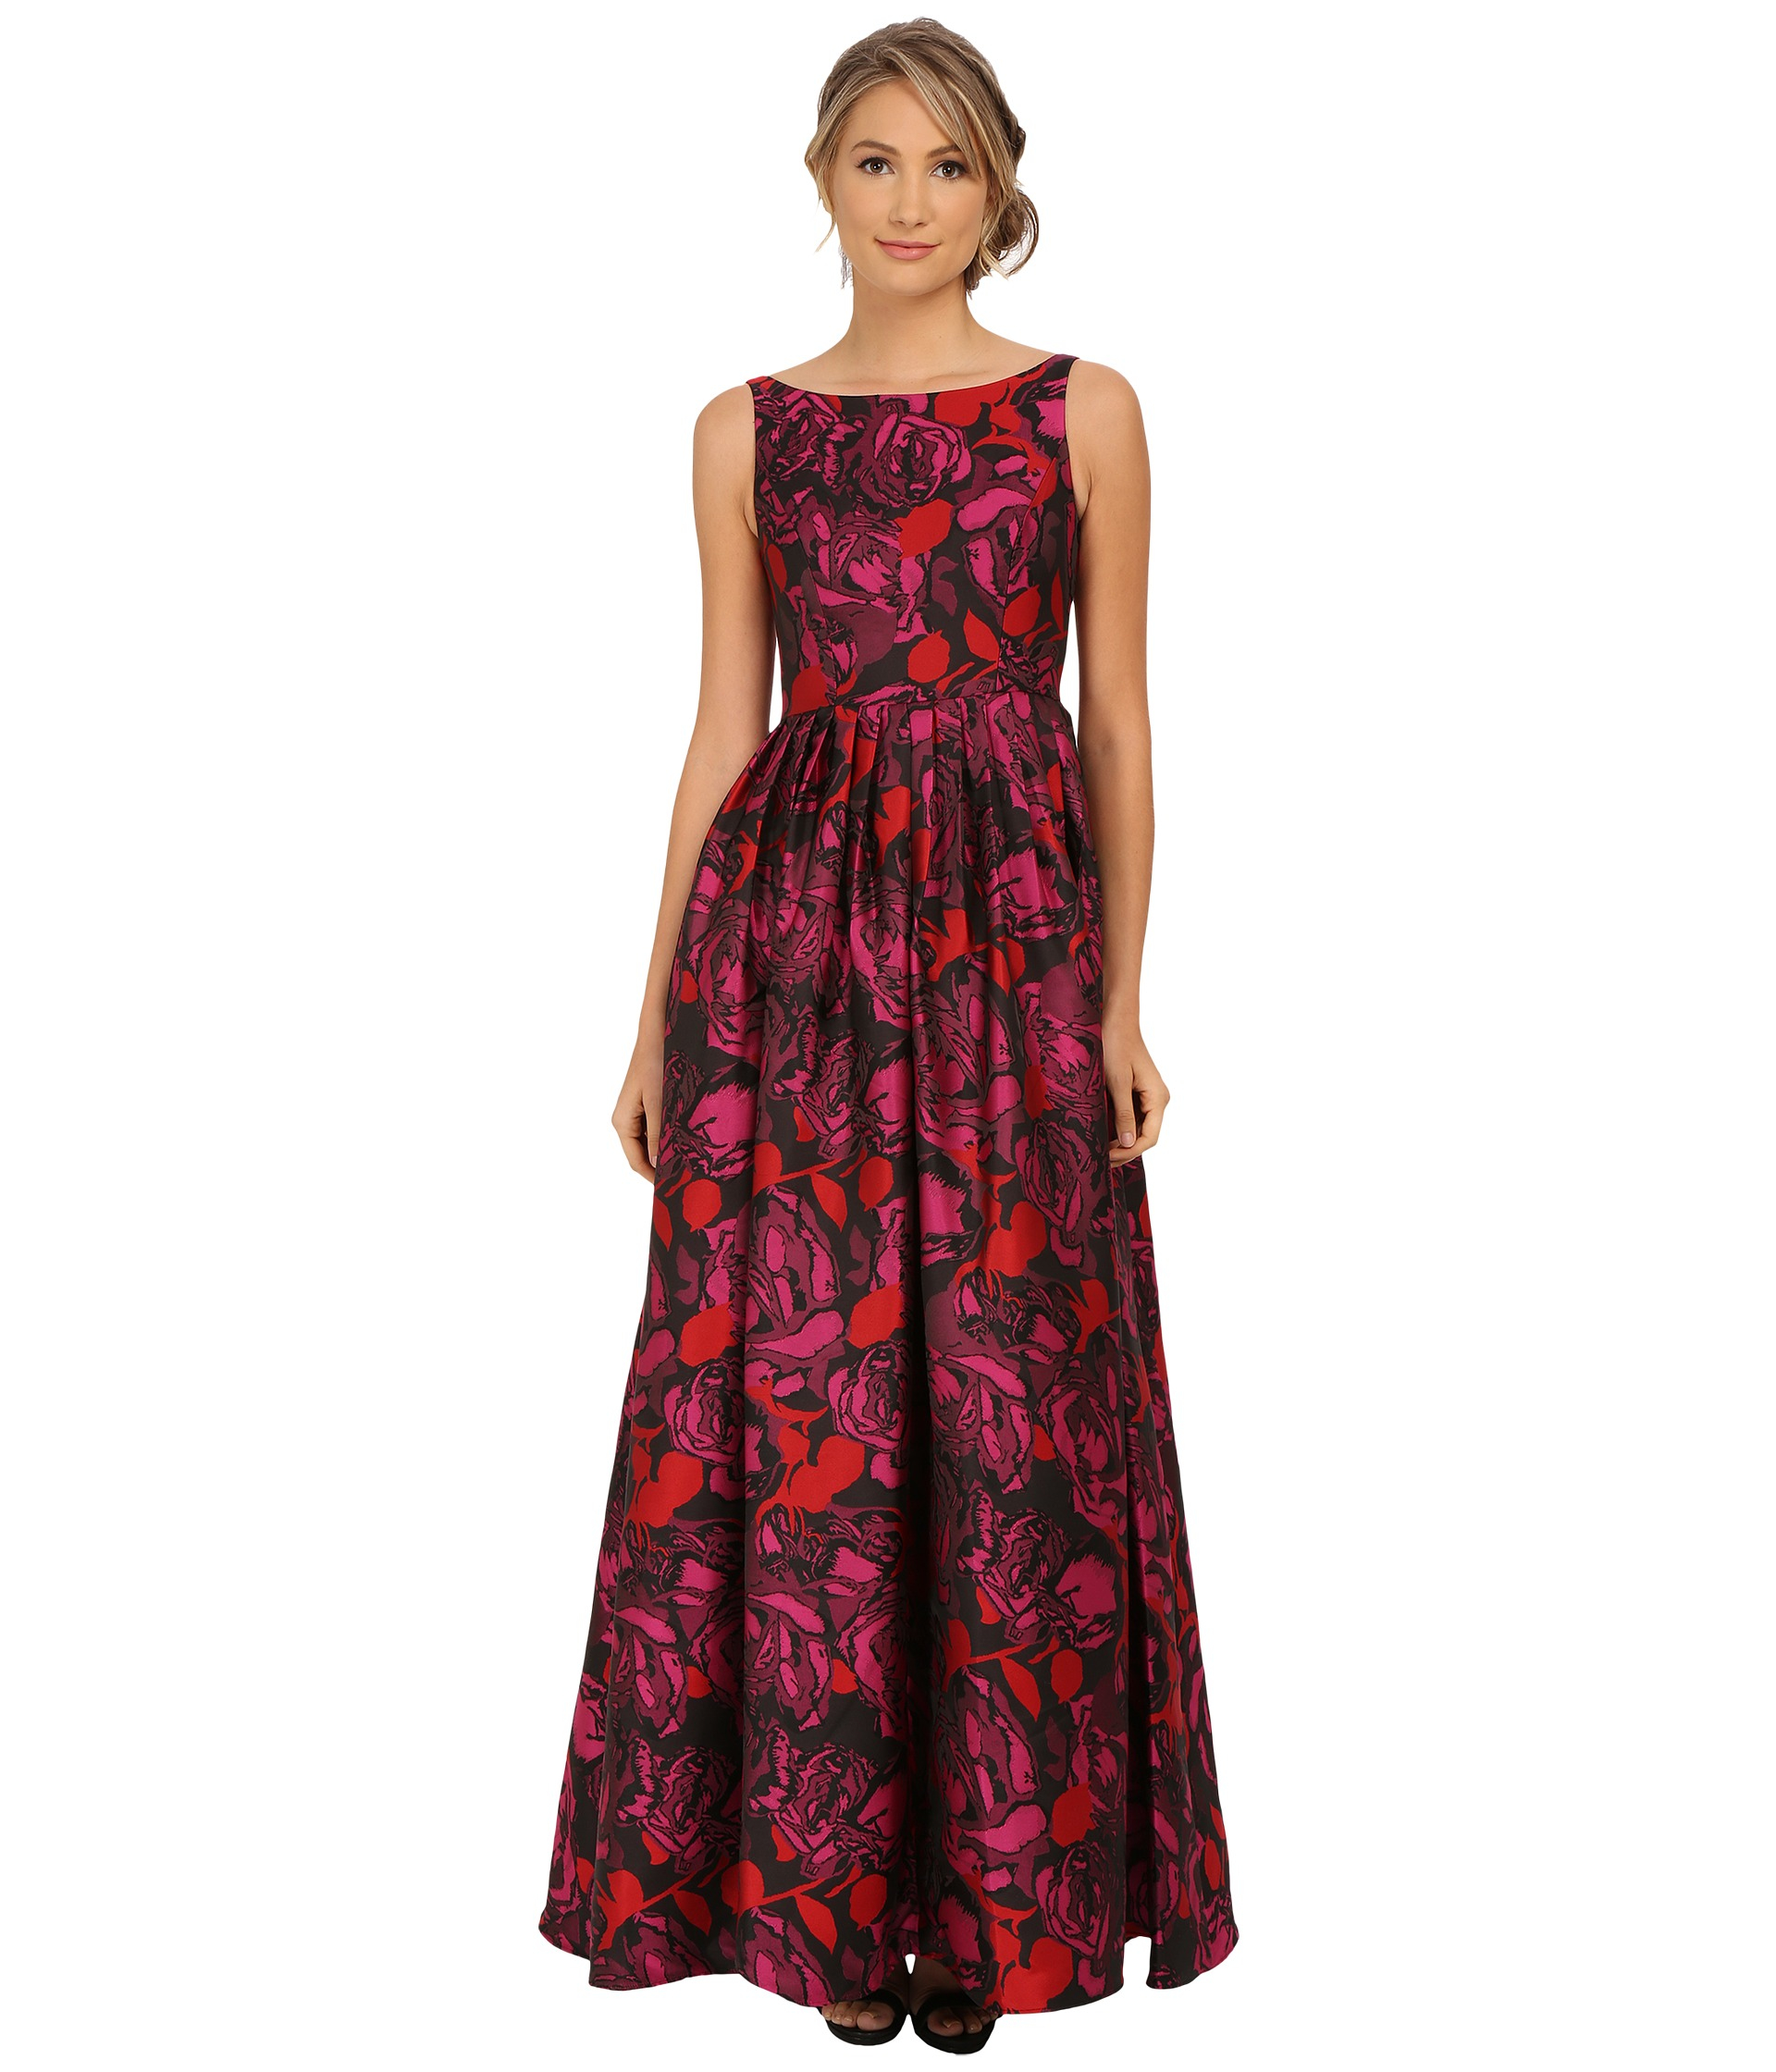 Lyst - Adrianna Papell Sleeveless Floral Jacquard Ball Gown in Red